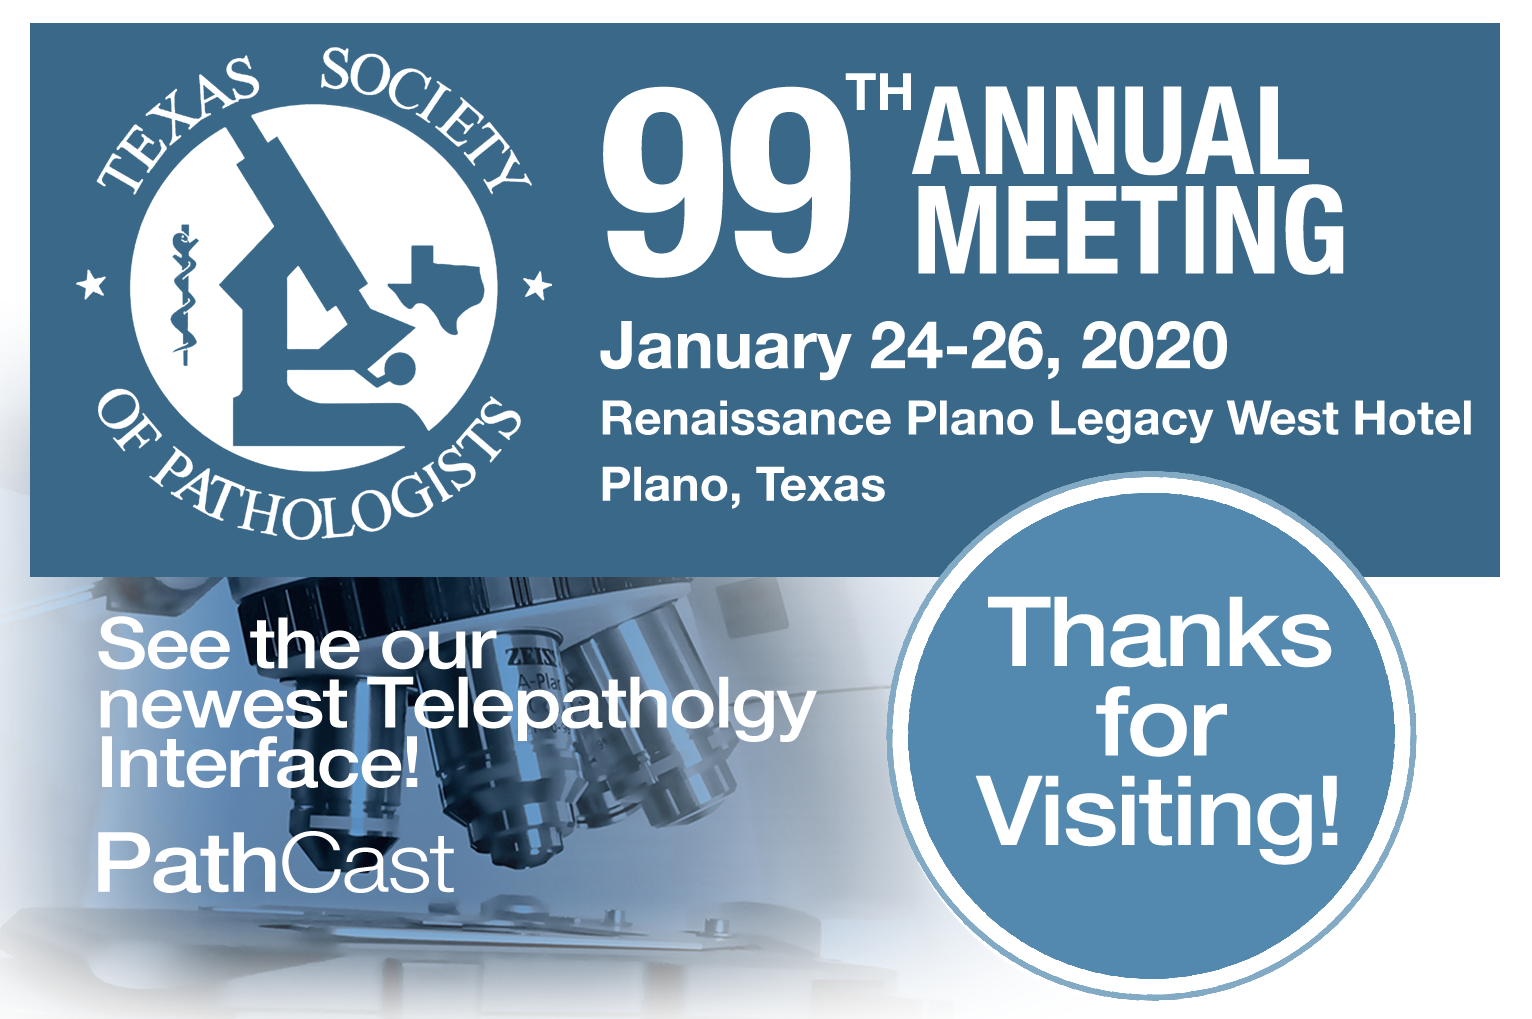 Thanks for visiting us at the Texas Society of Pathologists in Plano, Texas, January 24-28, 2020